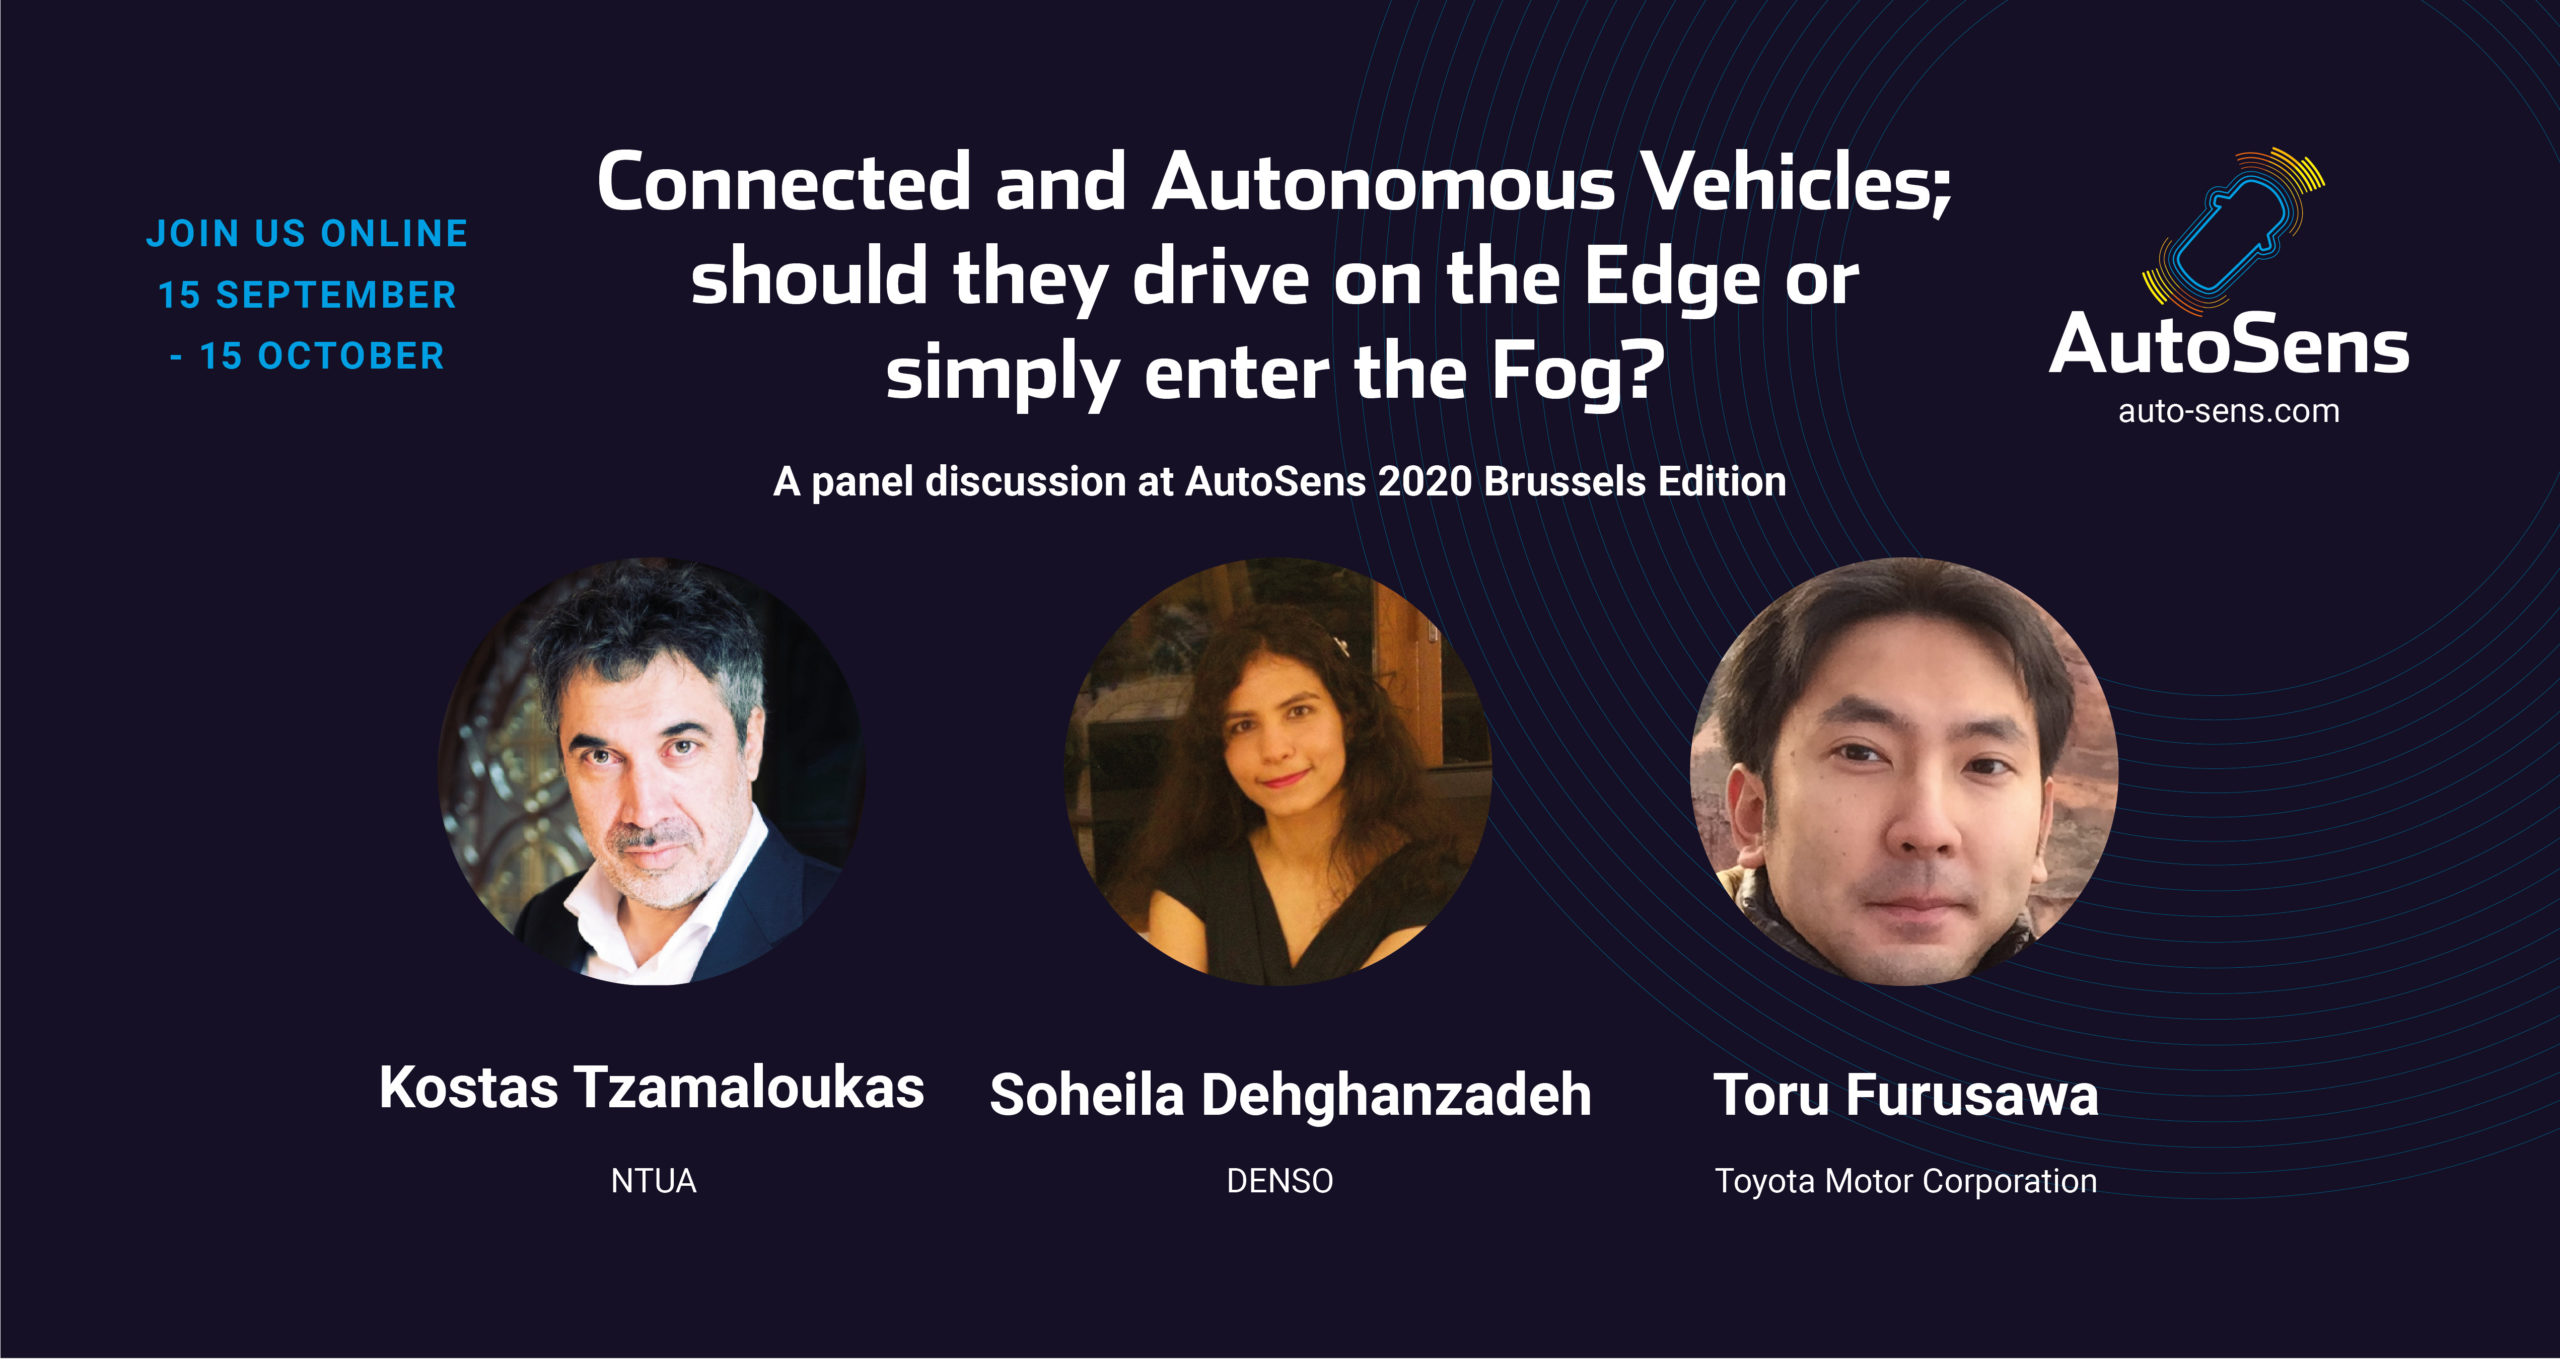 Connected and Autonomous Vehicles; should they drive on the Edge or simply enter the Fog?